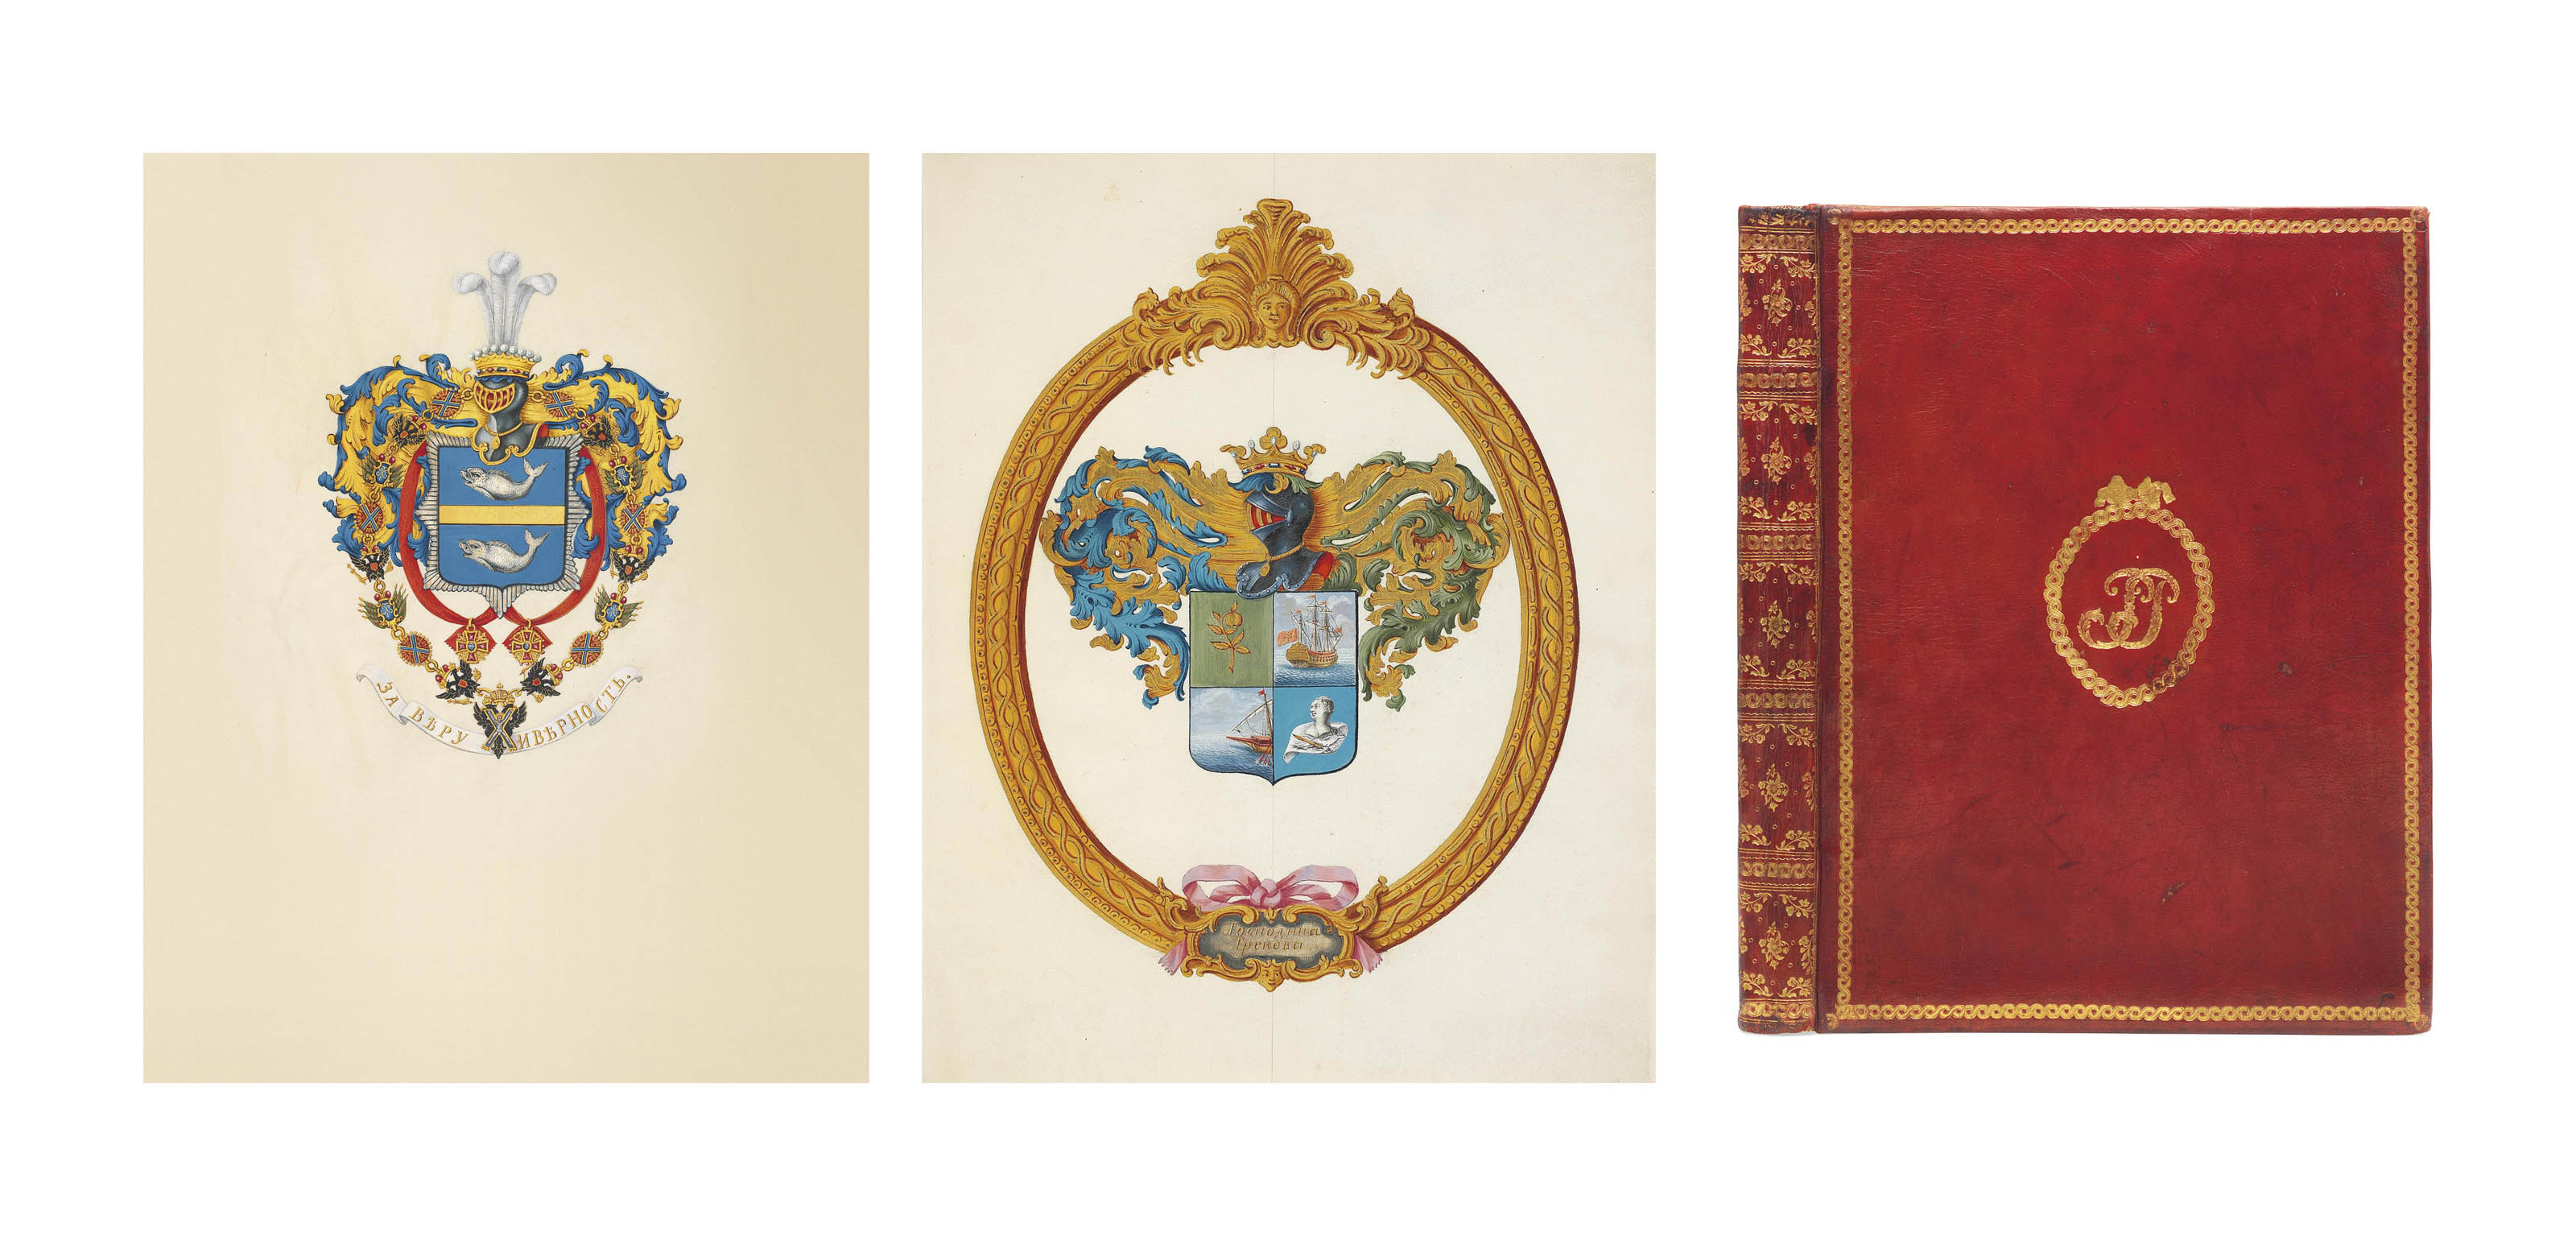 HERALDRY -- 'Sobranie gerbov vsekh nakhodiakhsia pri dvore Ego Impereratorskago Vysochestvo' [Collection of Arms of all attached to the Court of His Imperial Highness, drawn by Assessor Andrei Grekov], [St. Peterburg,] 1769.